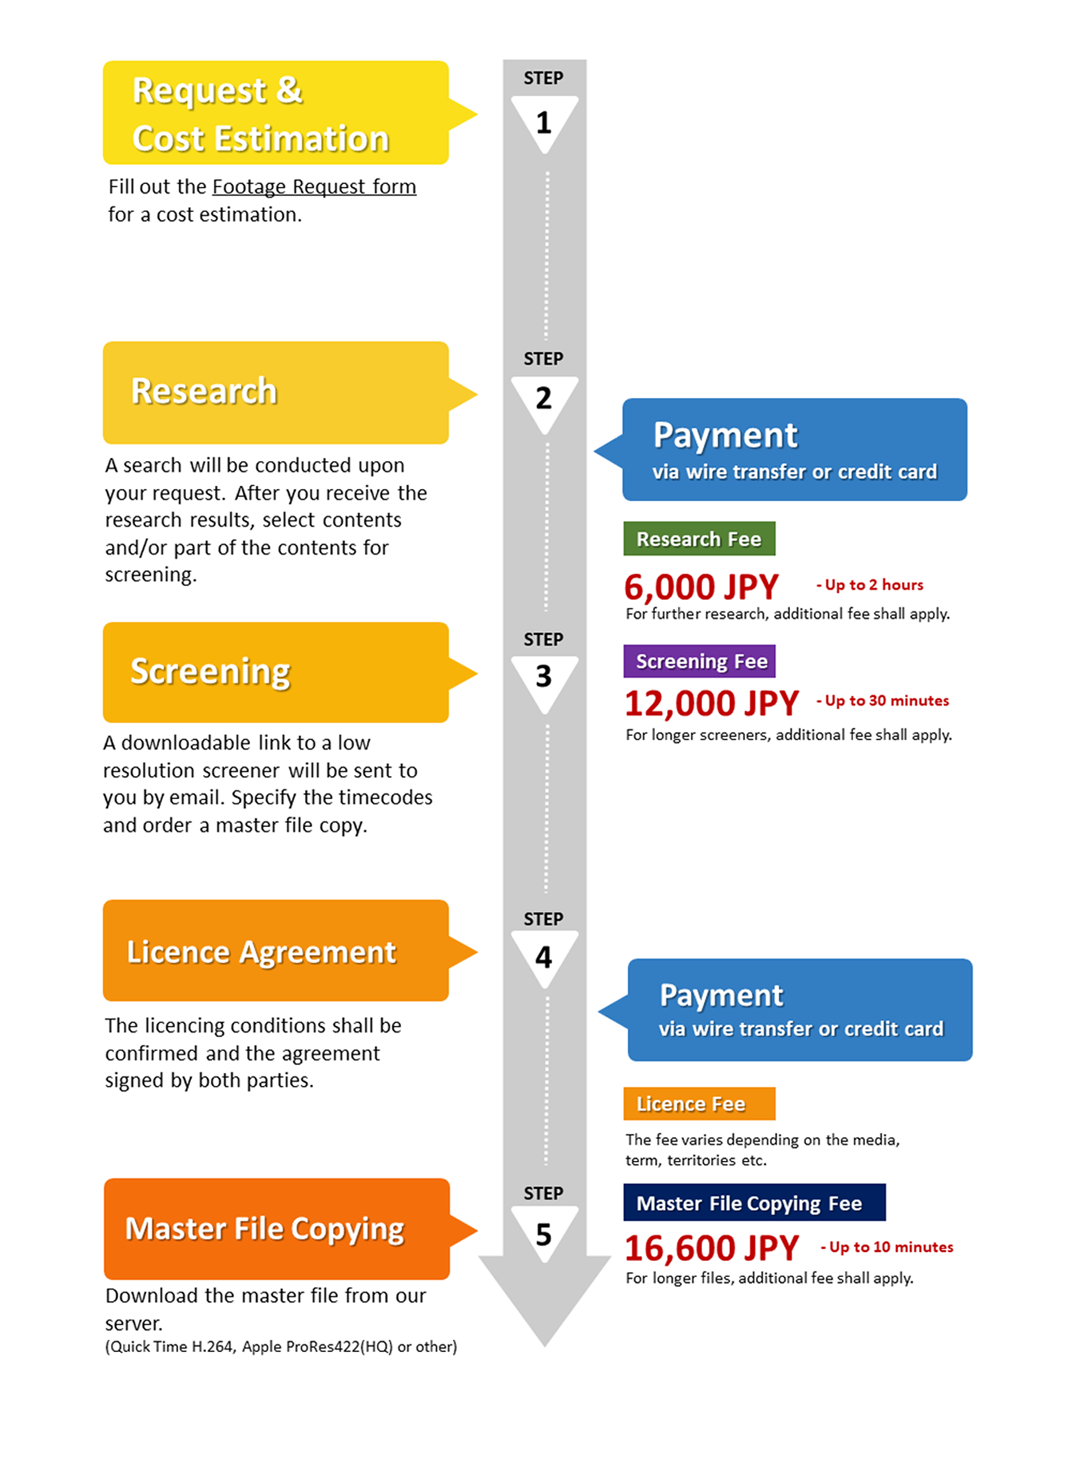 Licensing Process and Payment